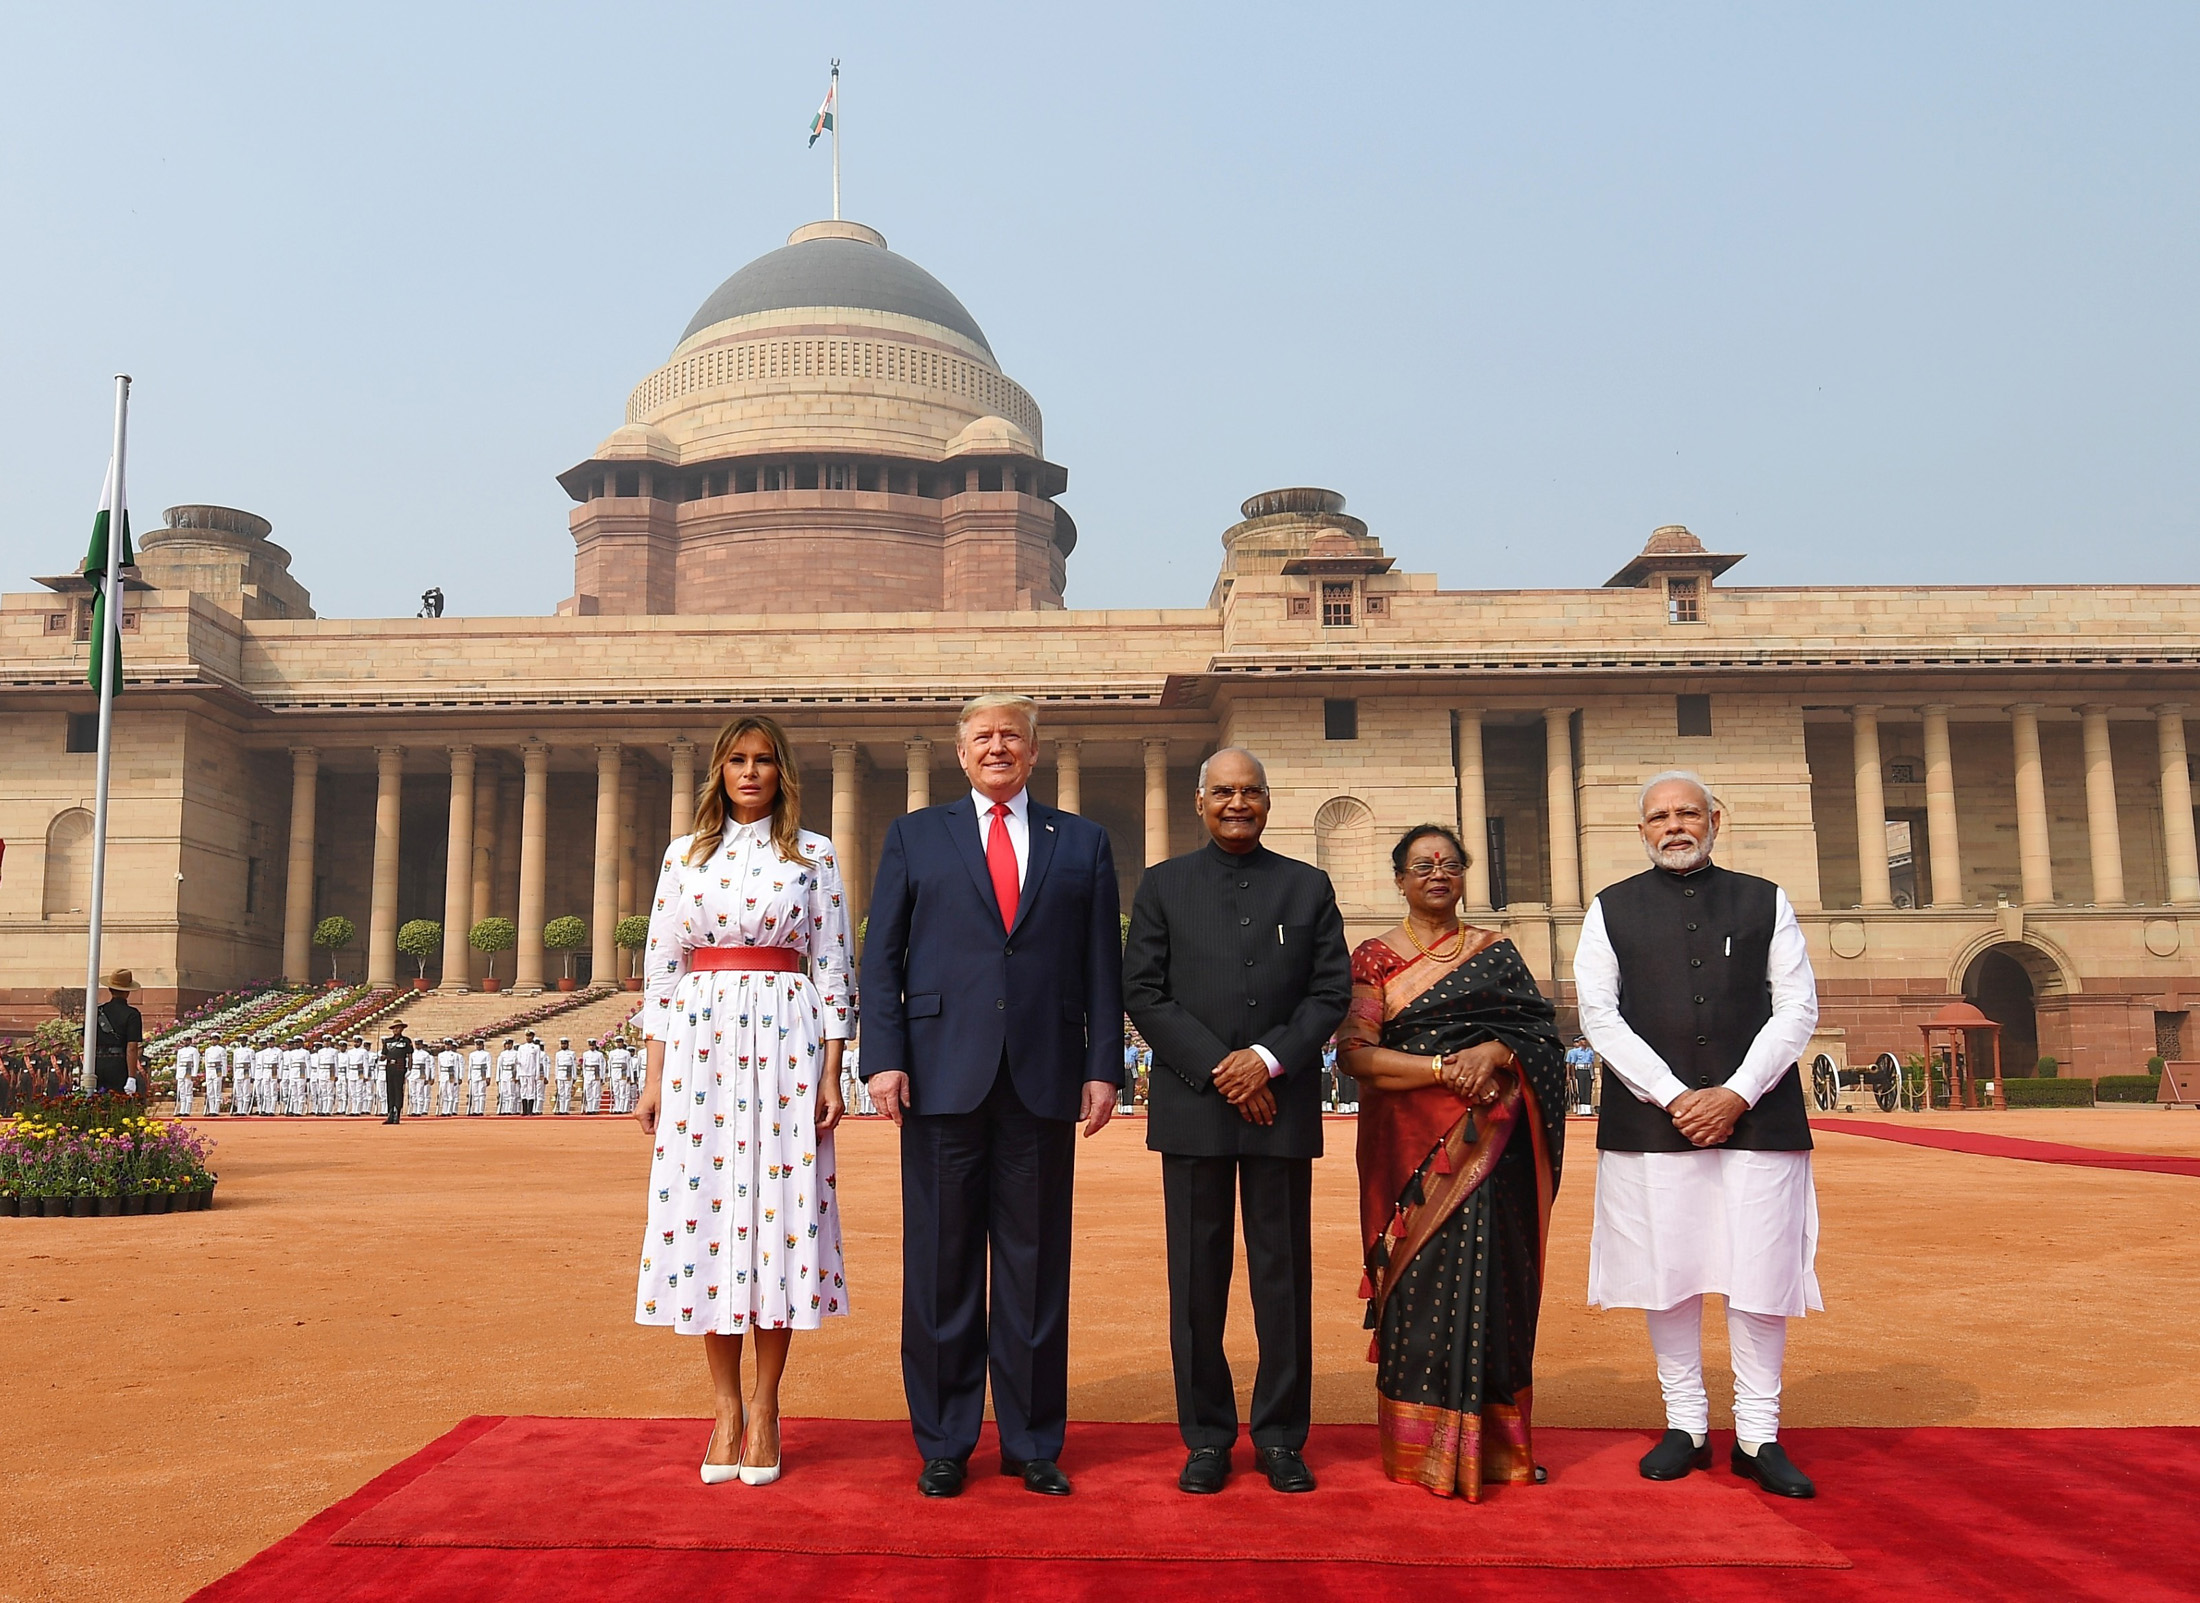 Namaste Trump Rajghat To Hyderabad House Eventful Day 2 In Indiaibg News Ibg News